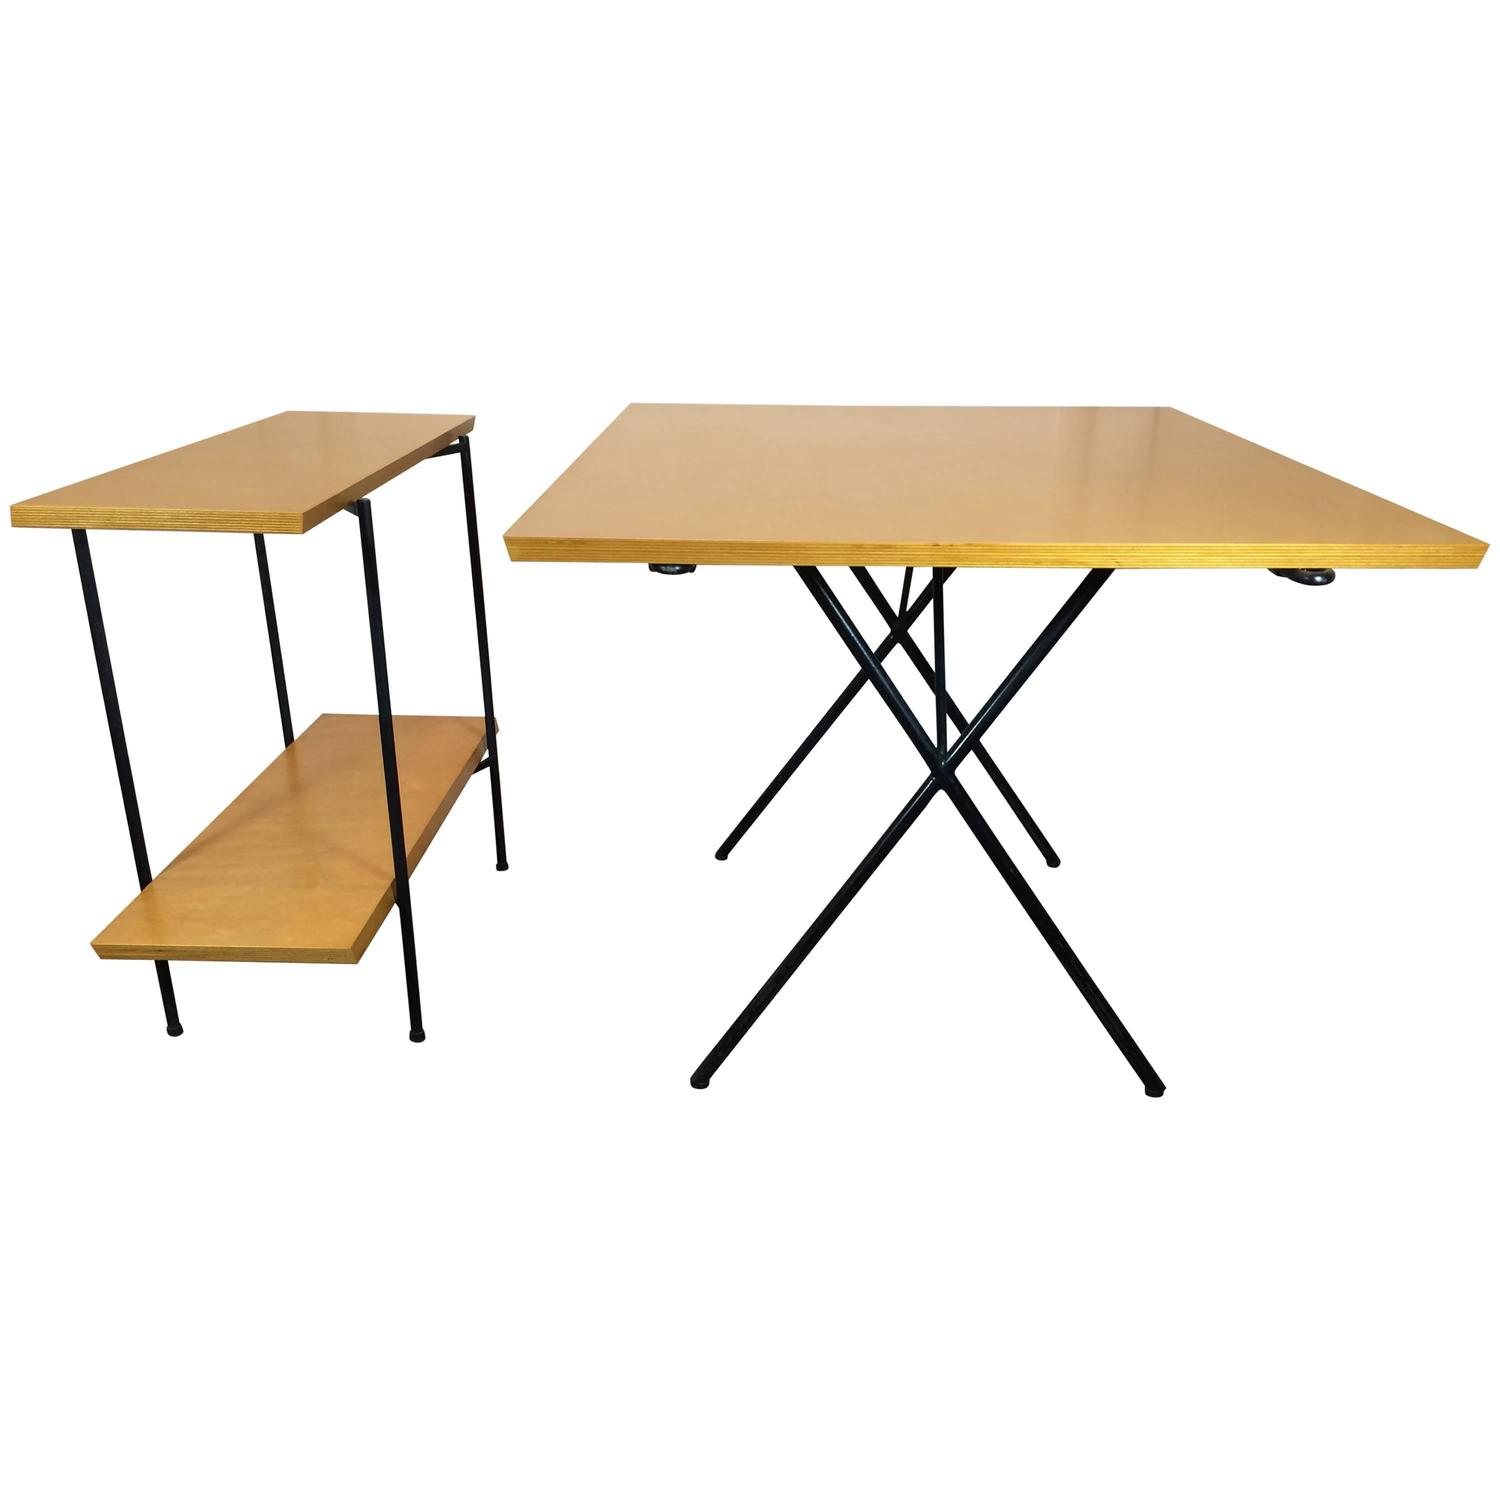 A extendable dining  table and folding server . Designed by Tony Paul in the 1950s, the shelves of the server are the extra leaves for the dining table. The server folds when not in use.